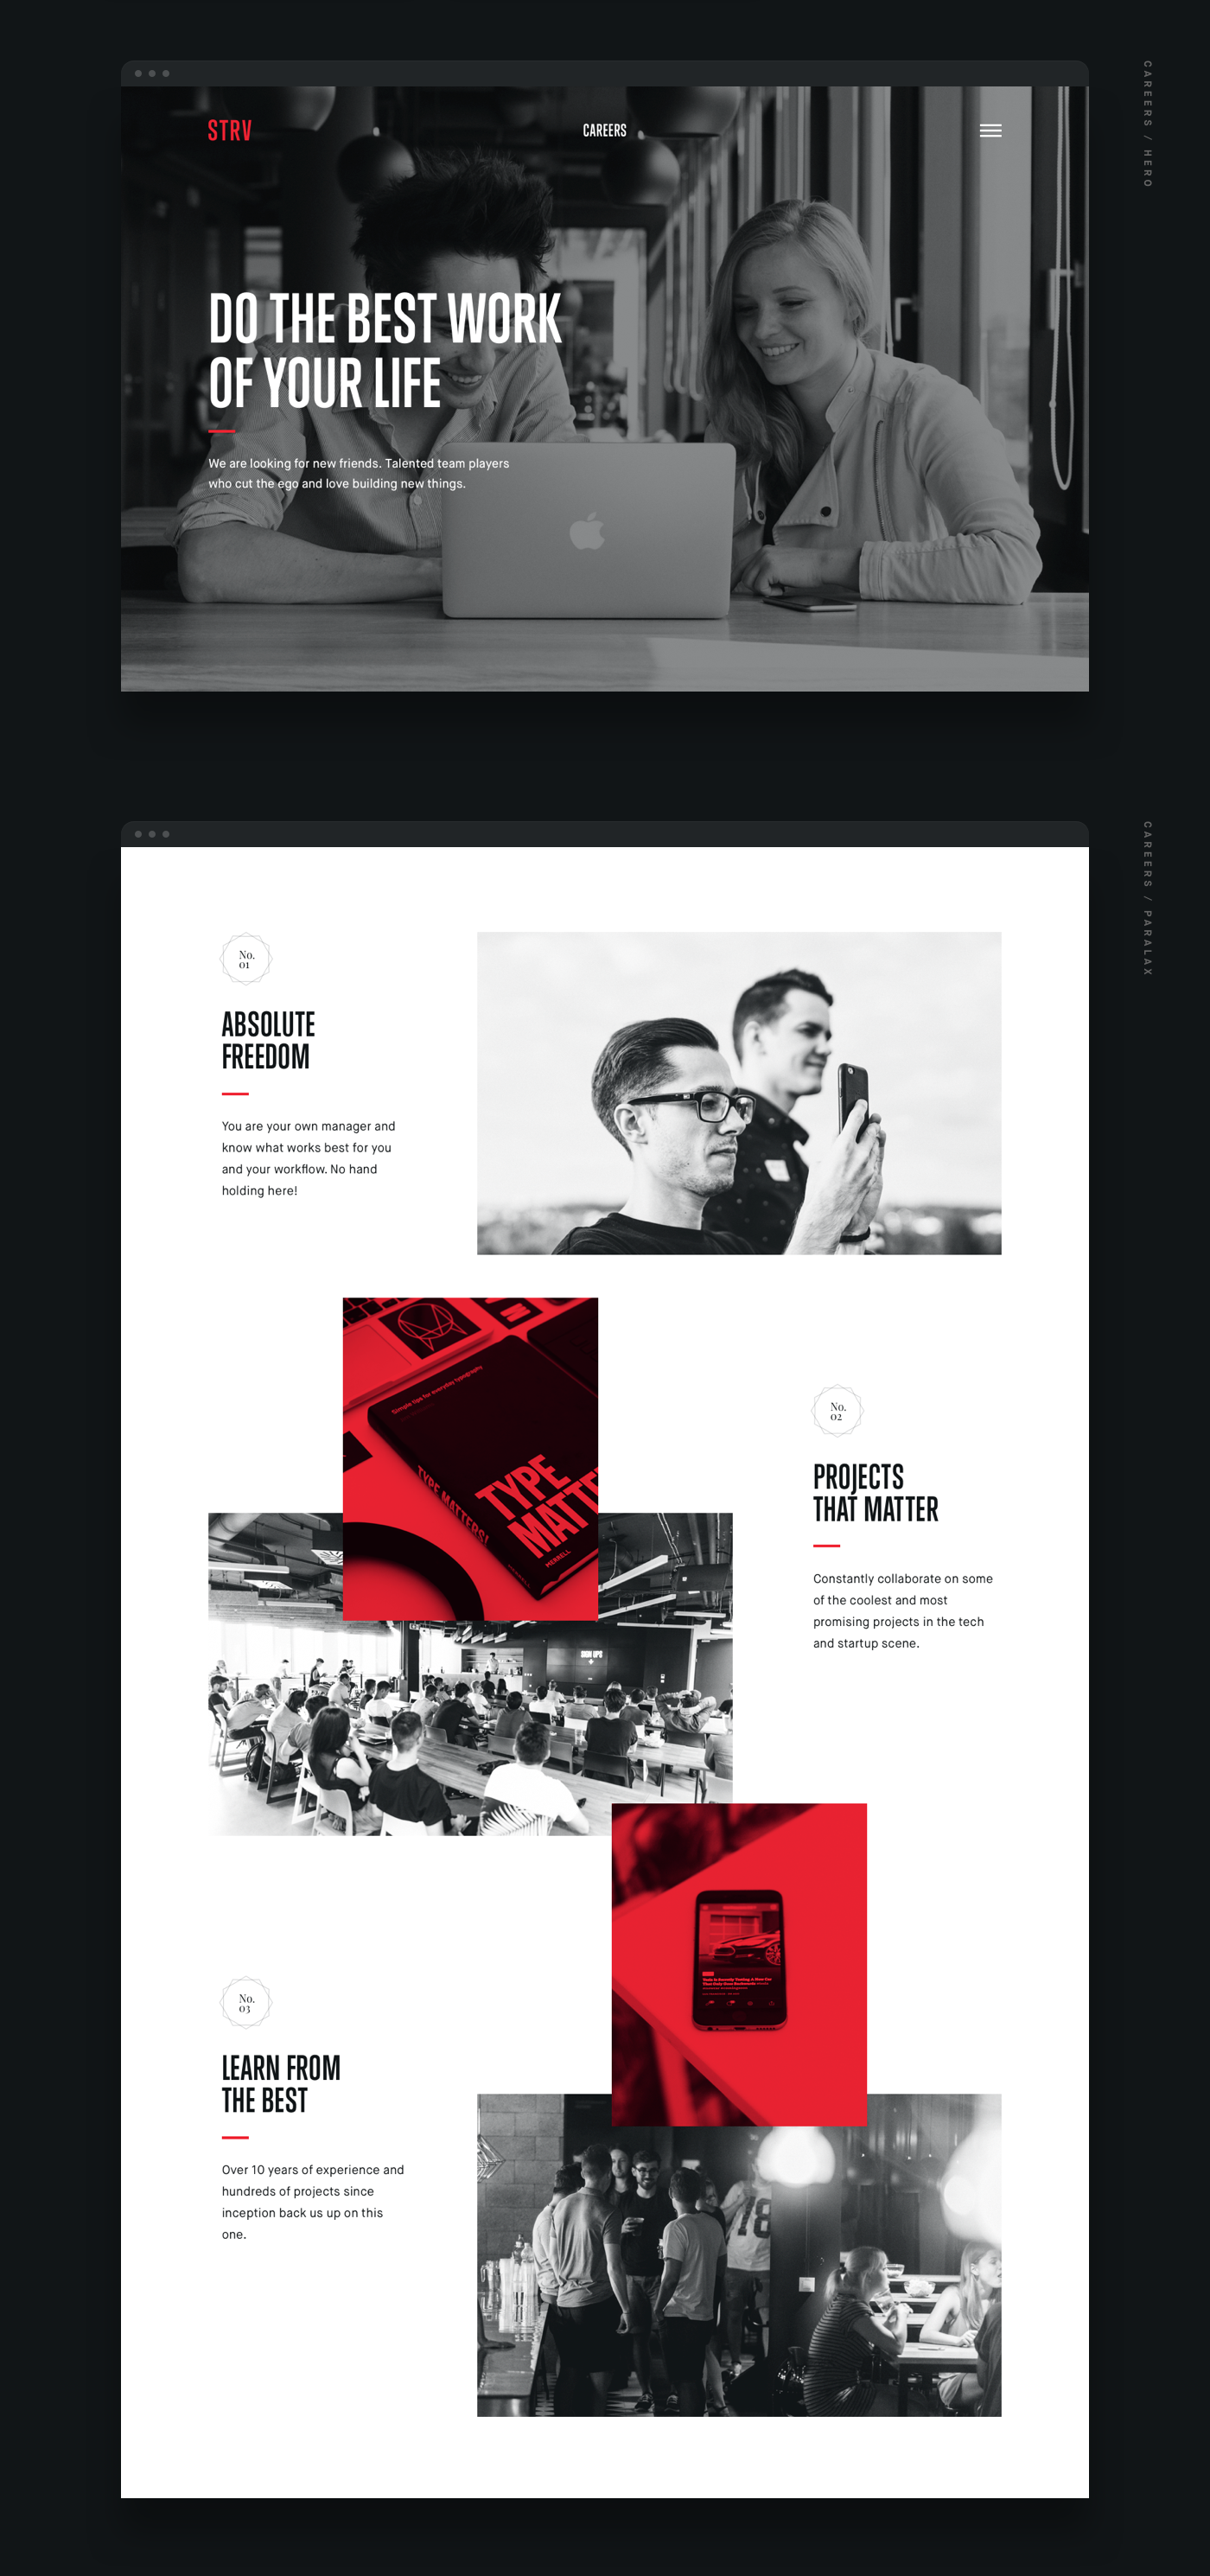 STRV is a development & design agency working with top